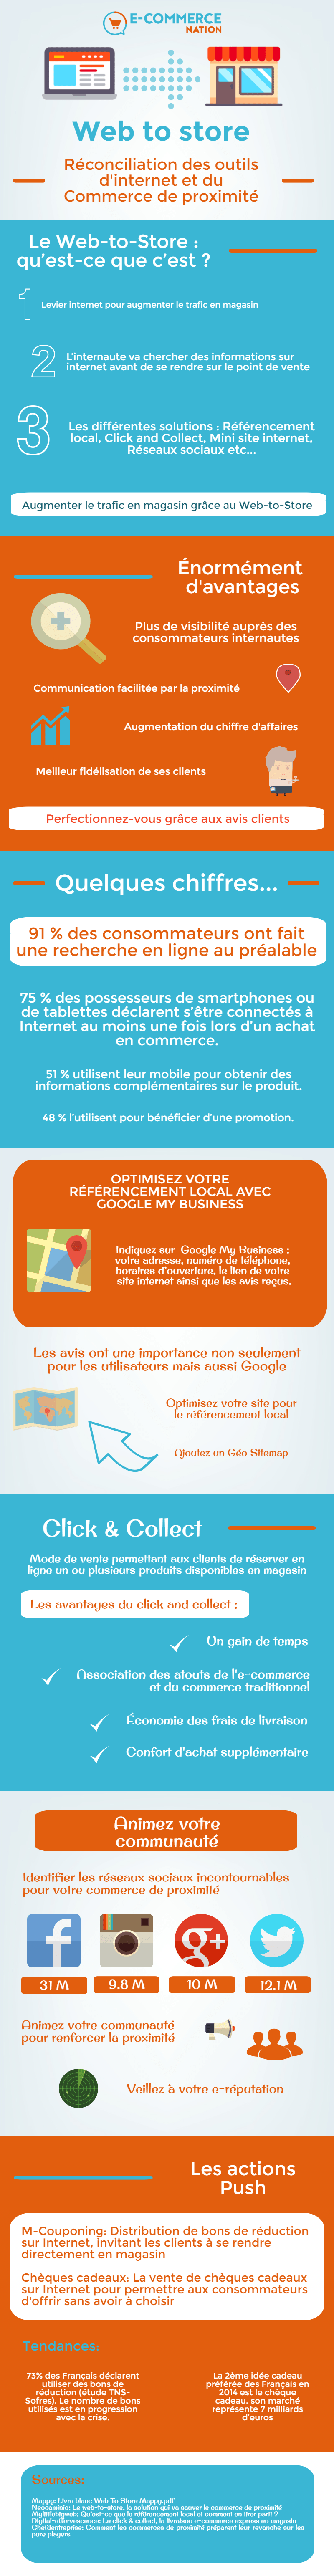 Infographie Web to store